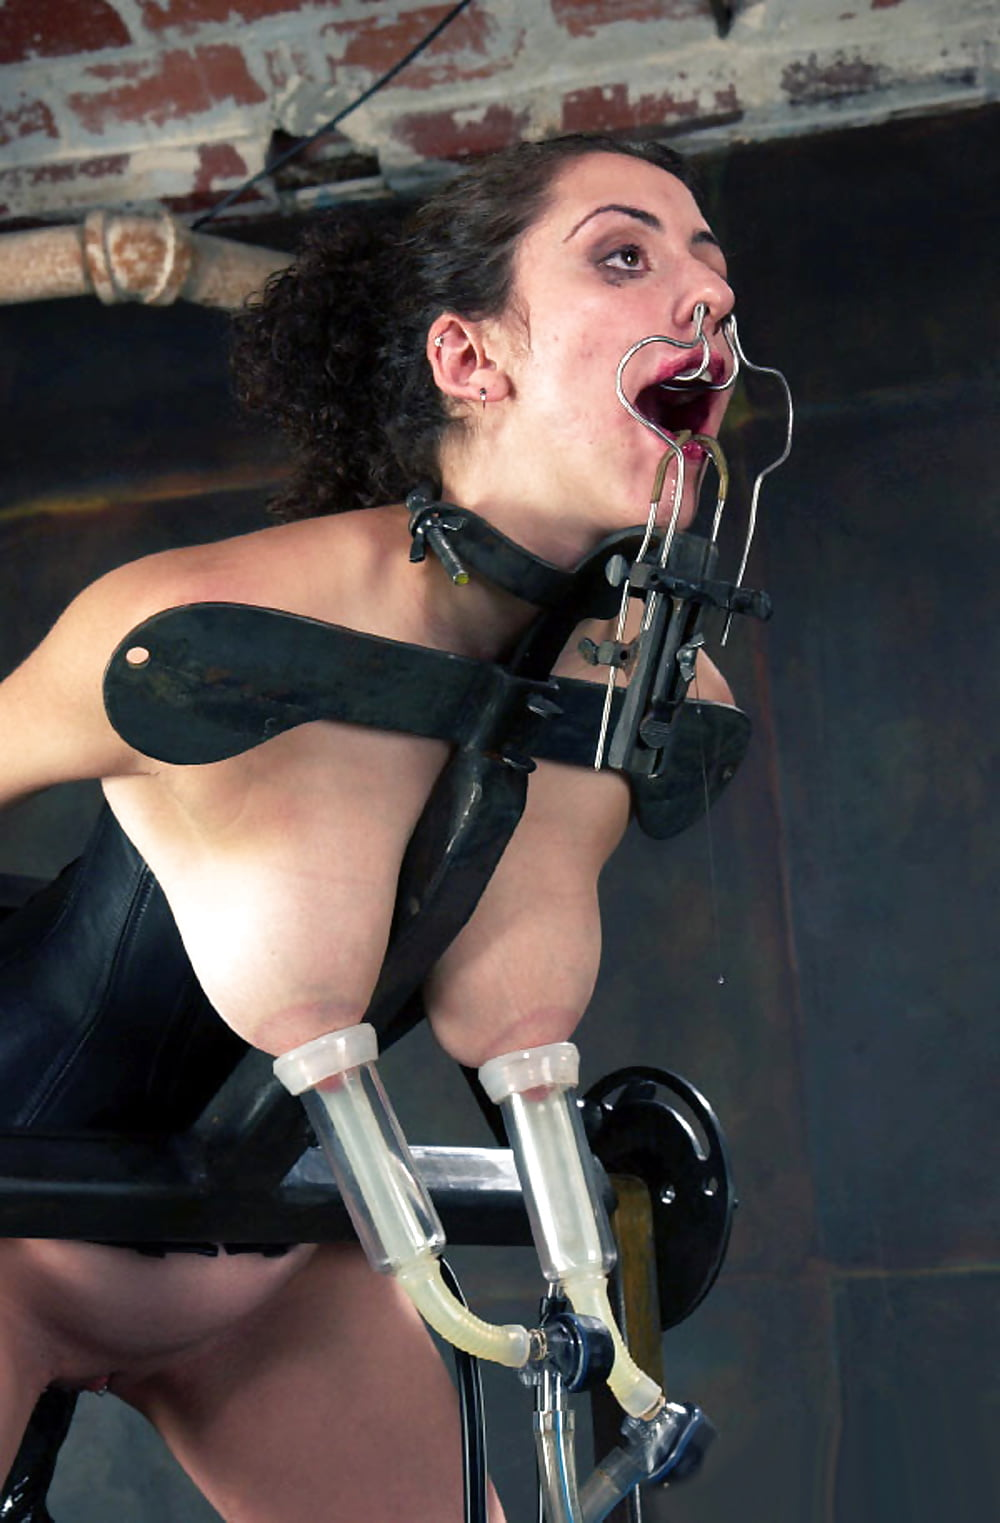 the-bed-bdsm-tit-milking-sex-brasil-fuck